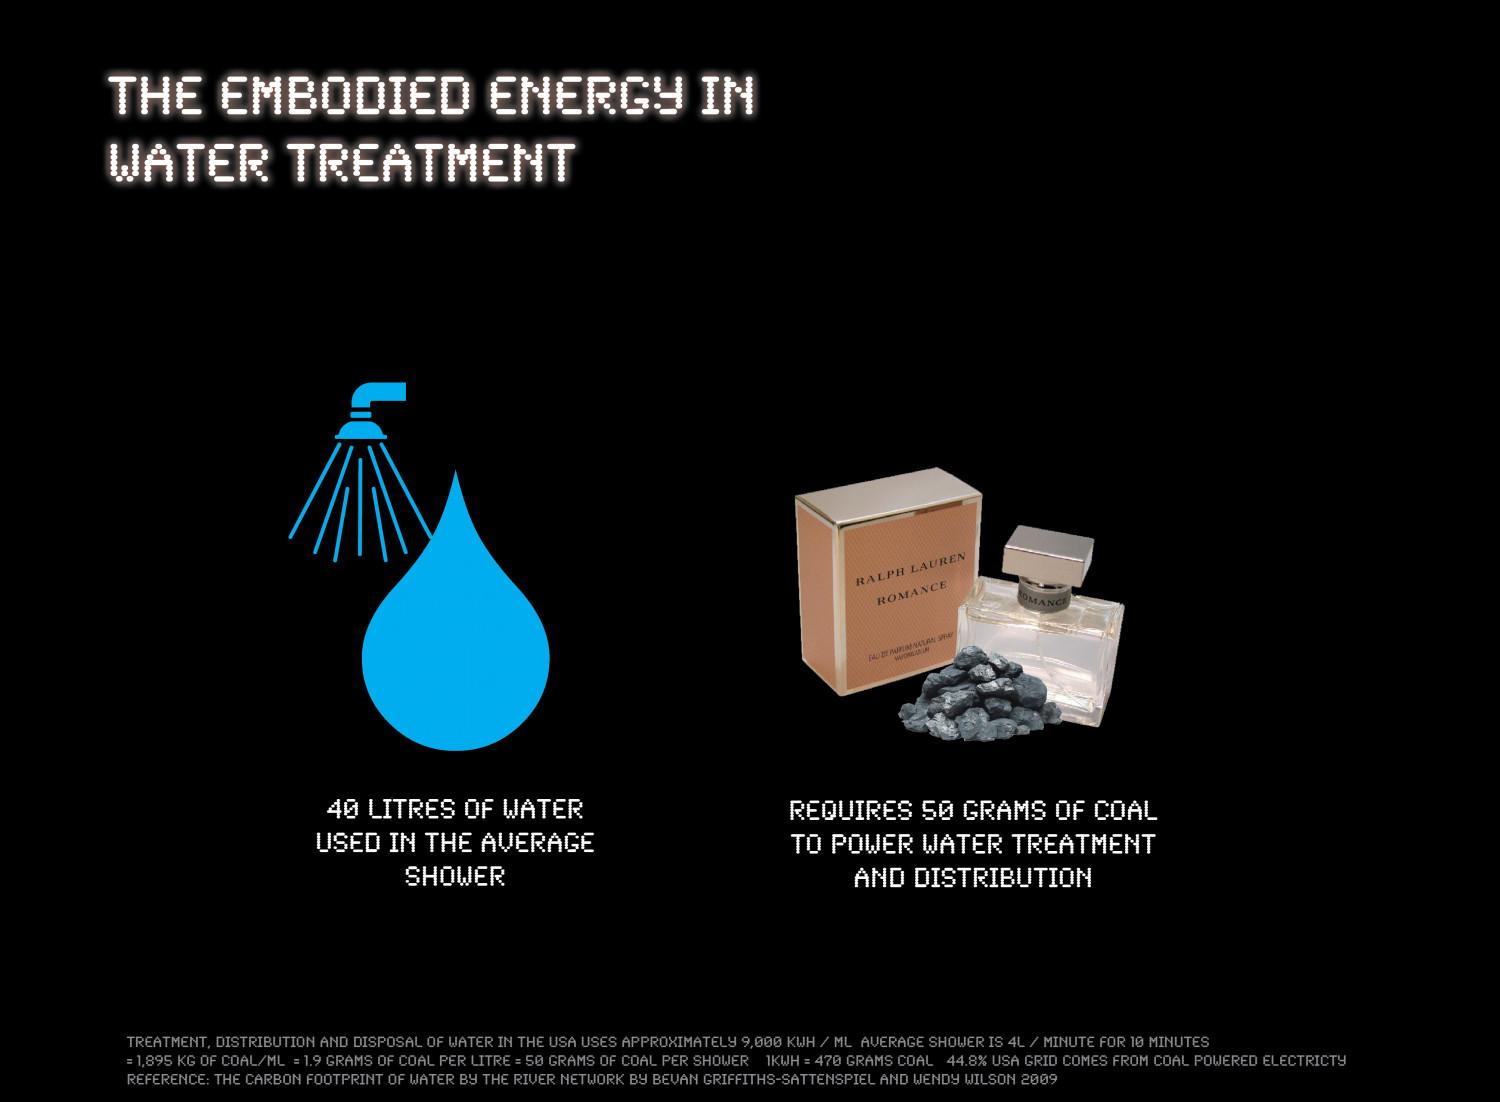 Embodied Energy in Water Treatment Infographic